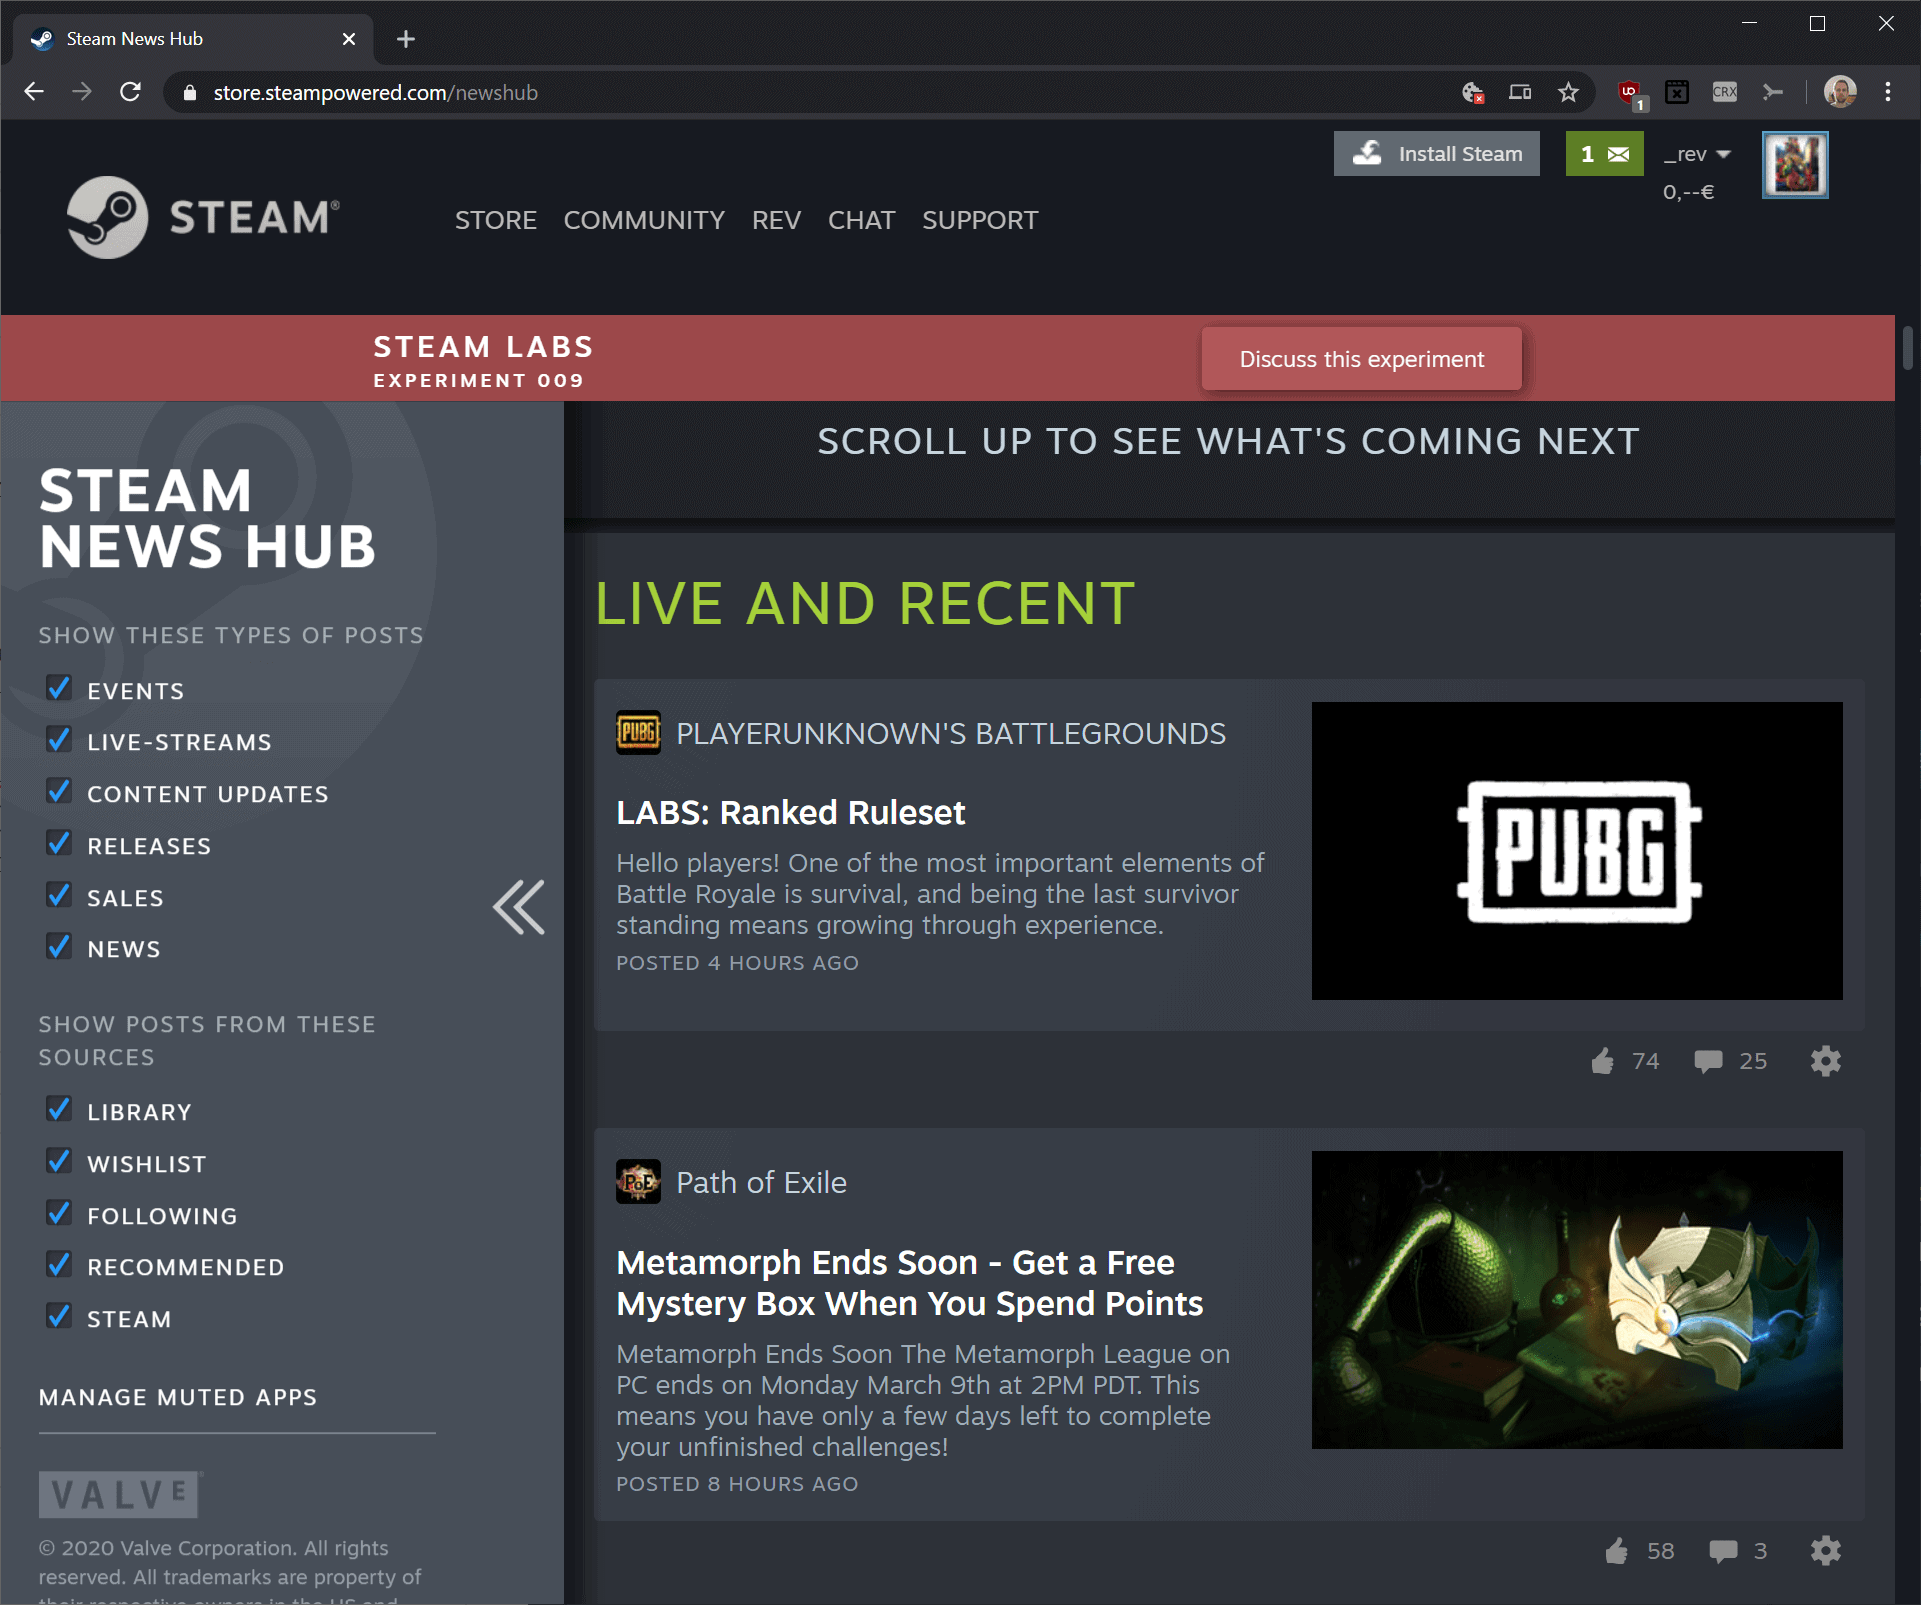 Steam News Hub offers personalized game news